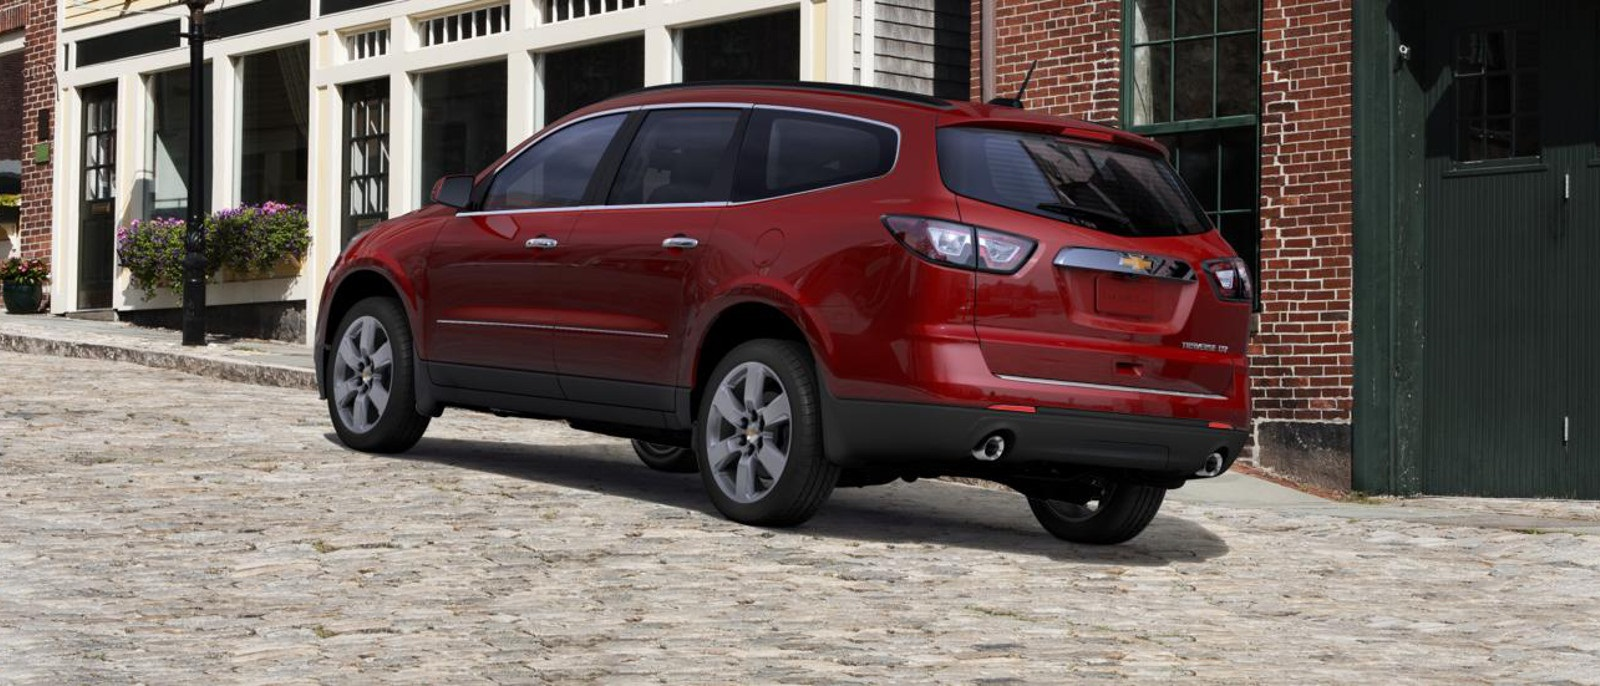 hight resolution of 2016 chevrolet traverse back view